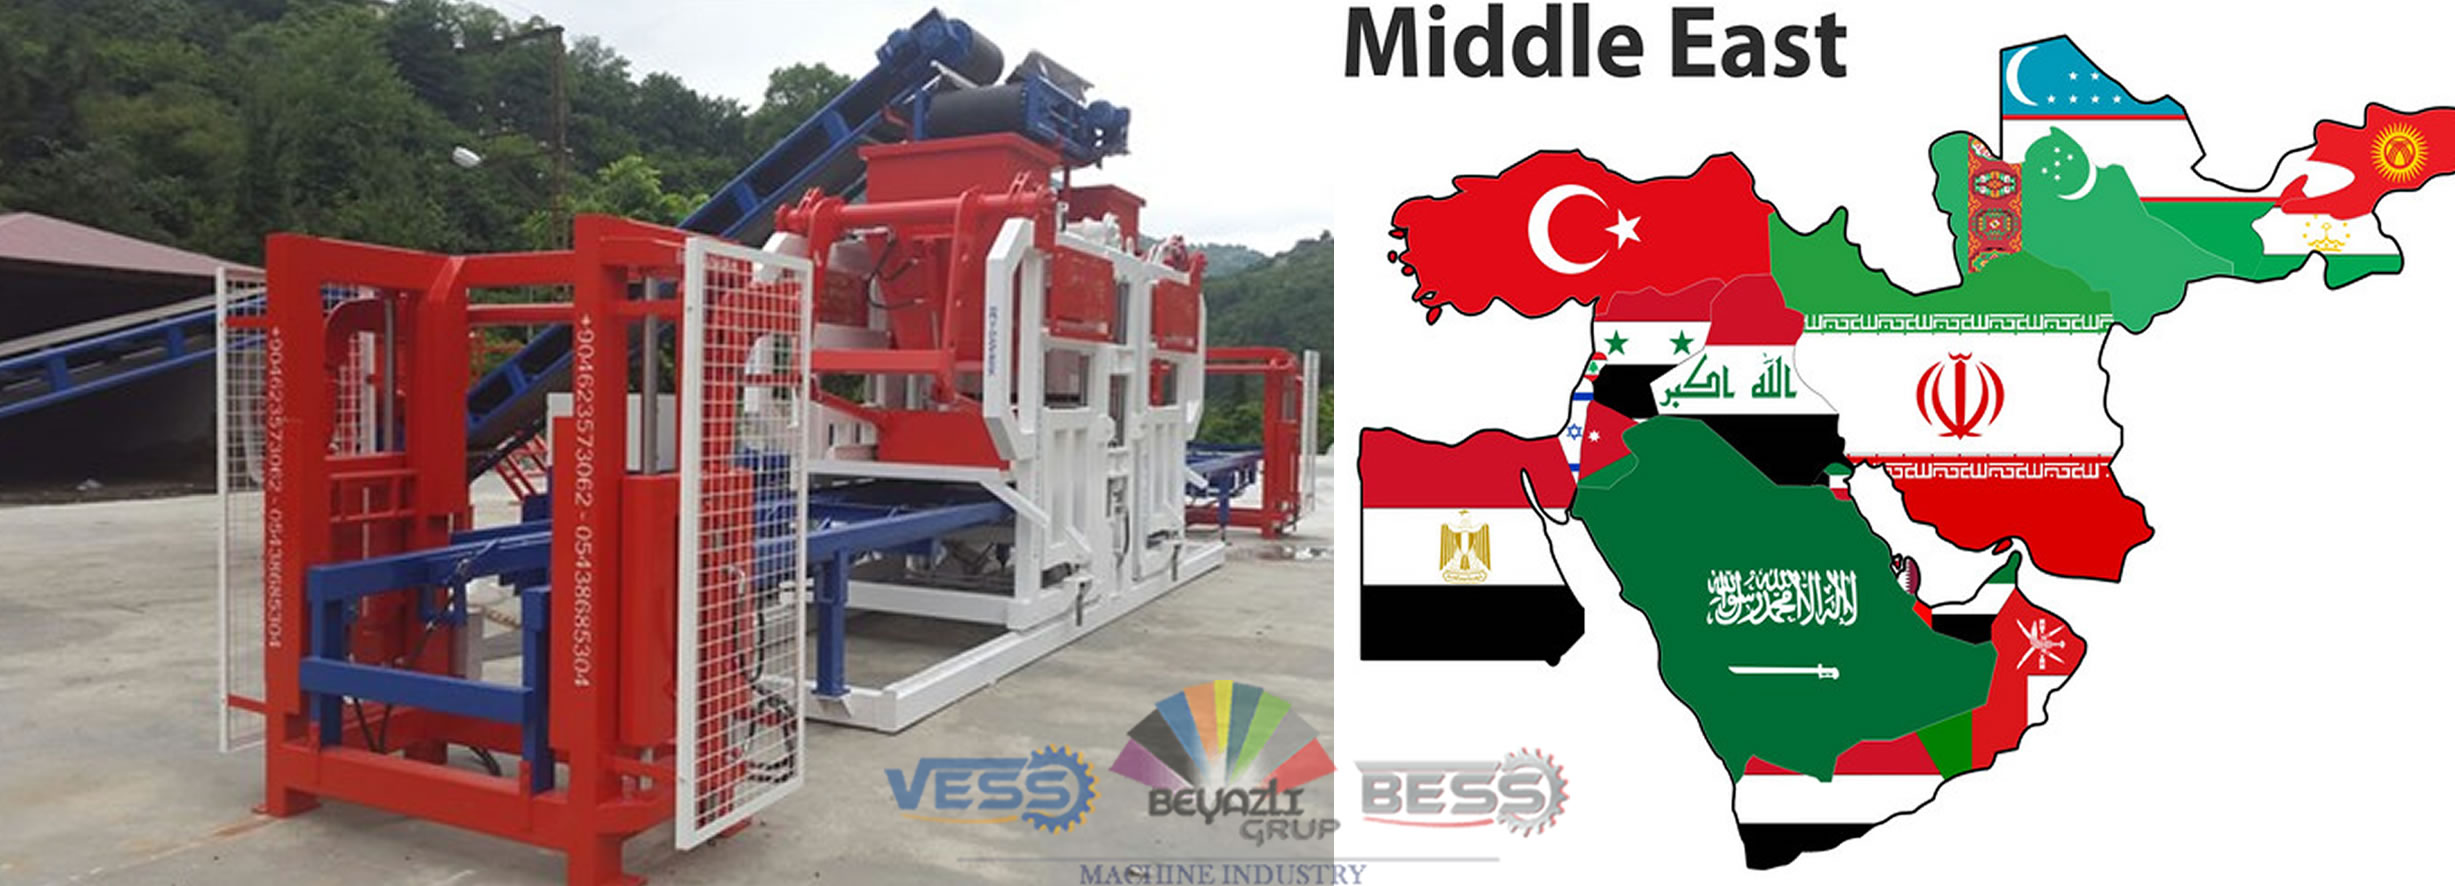 Concrete Block Making Machine For Middle East Countries Block Making Machine Bess Machines